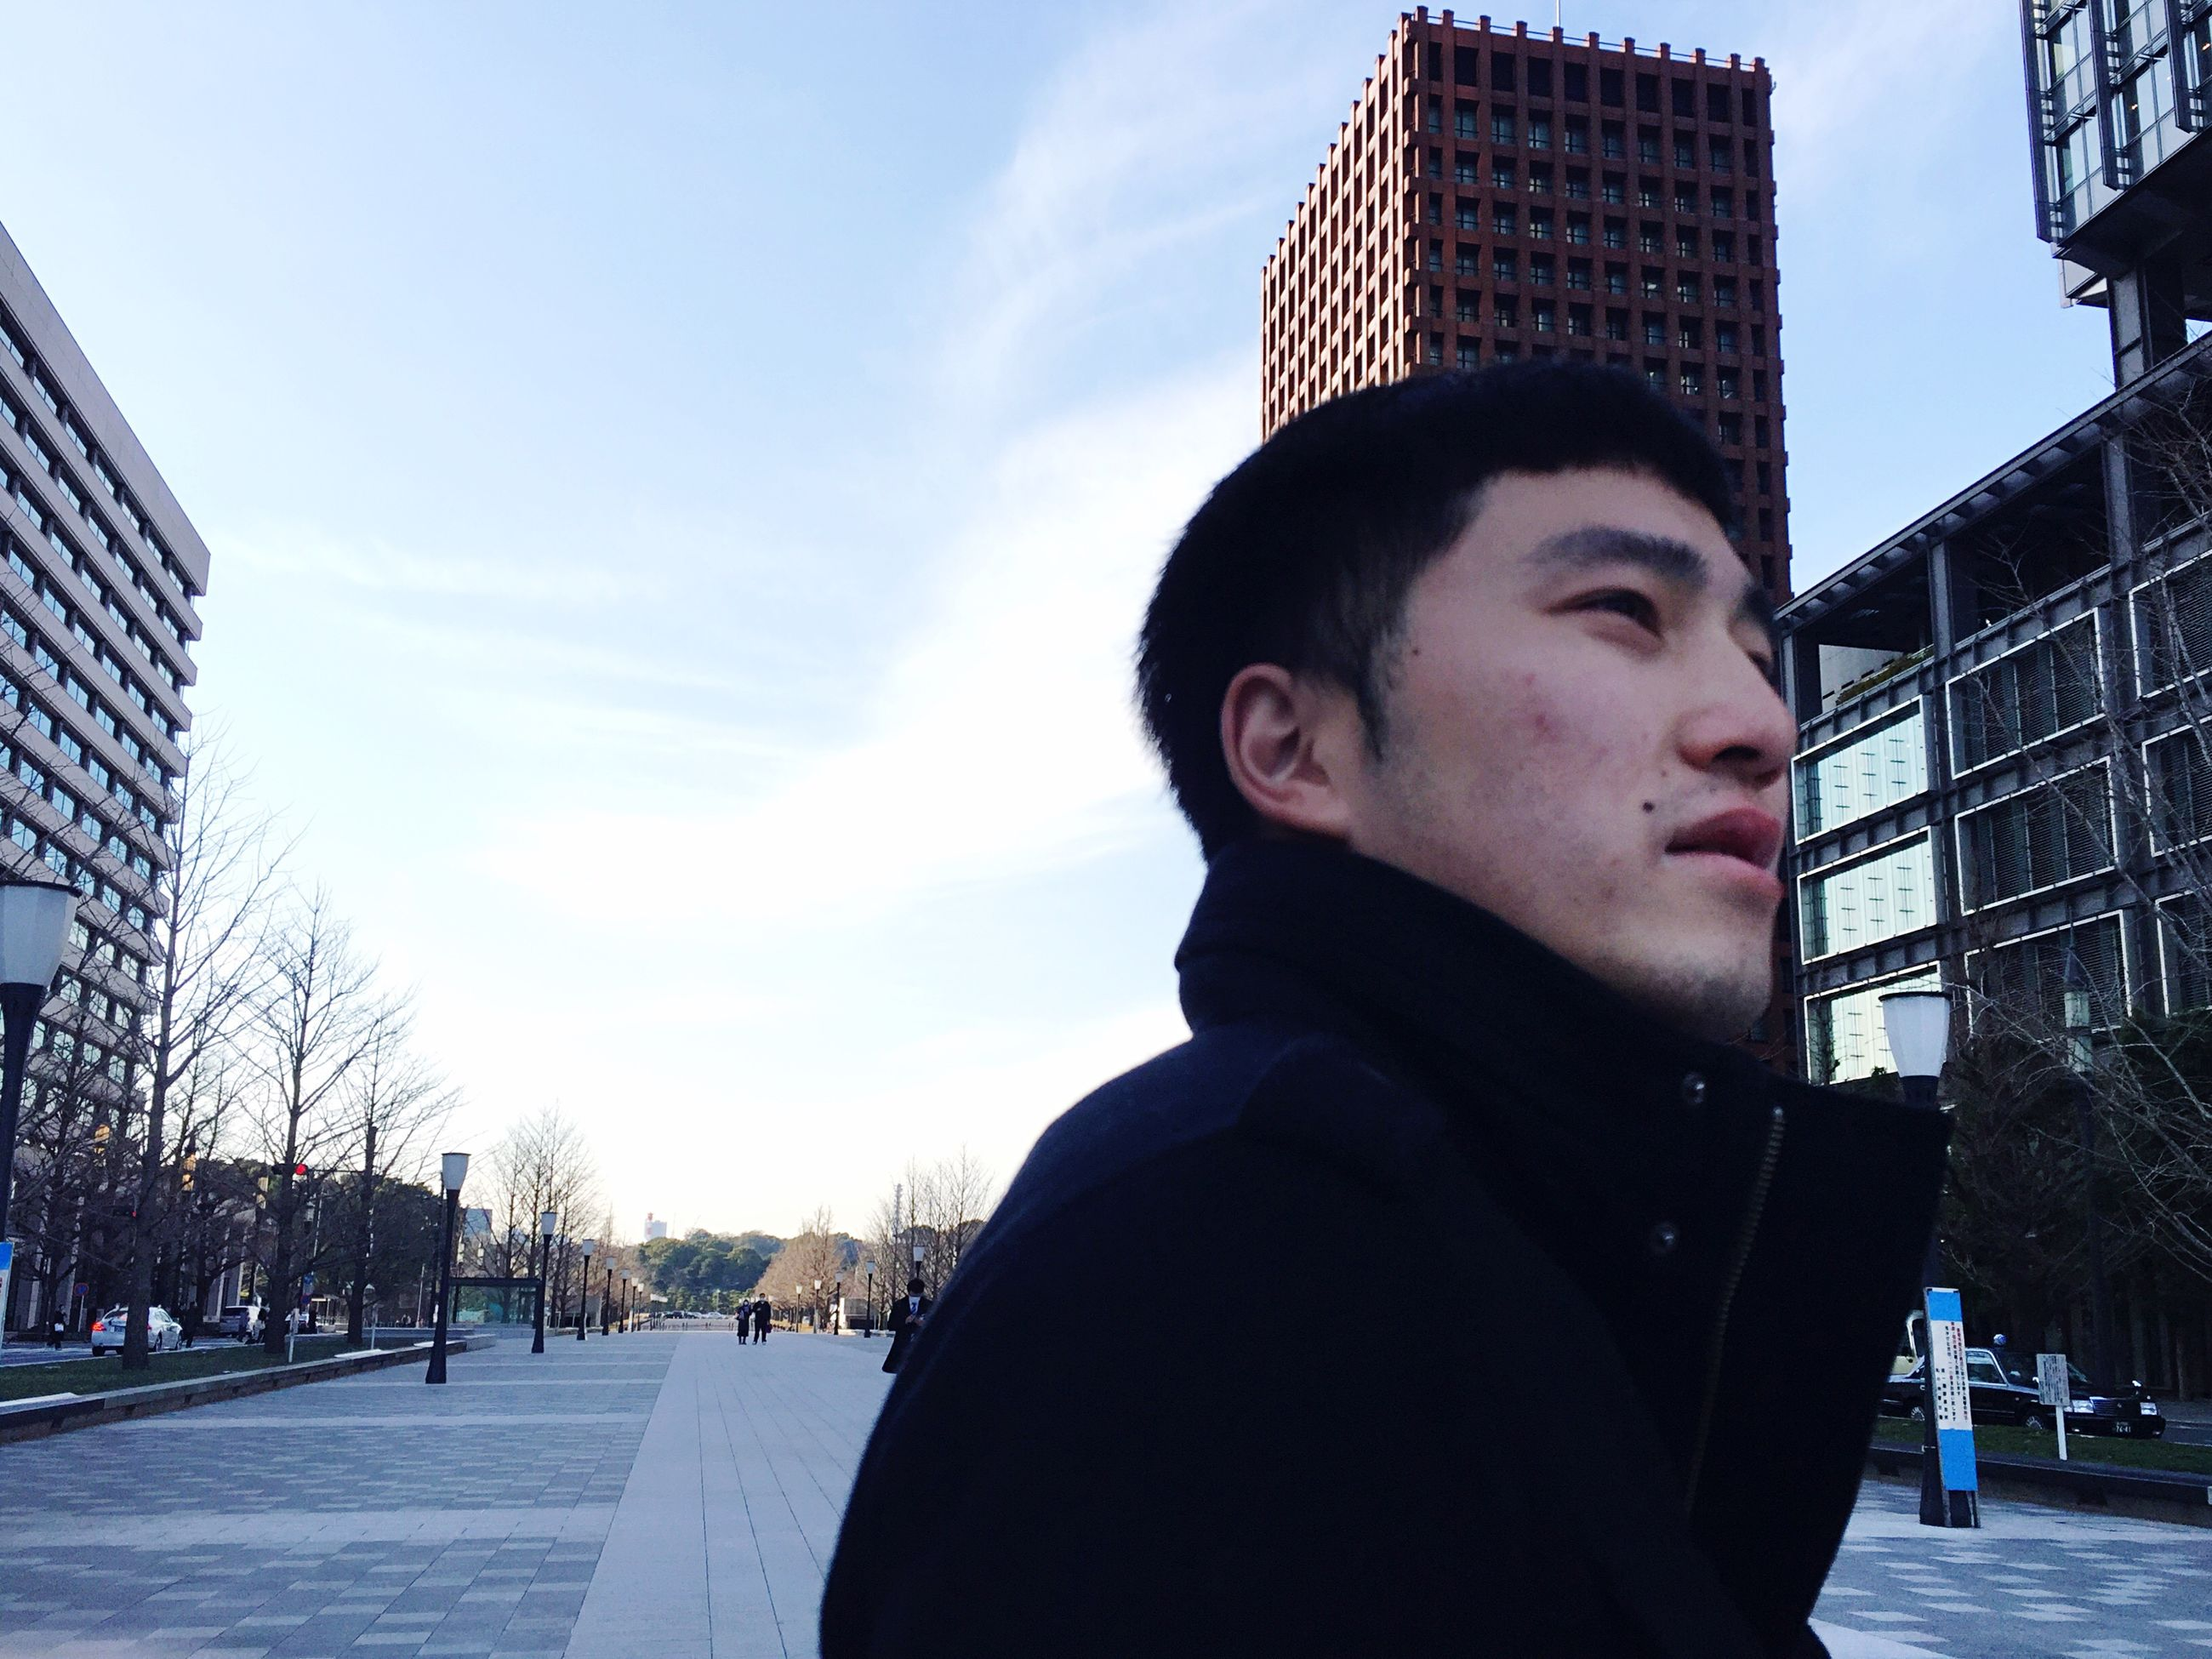 young adult, outdoors, city, real people, sky, one person, portrait, only men, day, men, close-up, architecture, one man only, adults only, people, adult